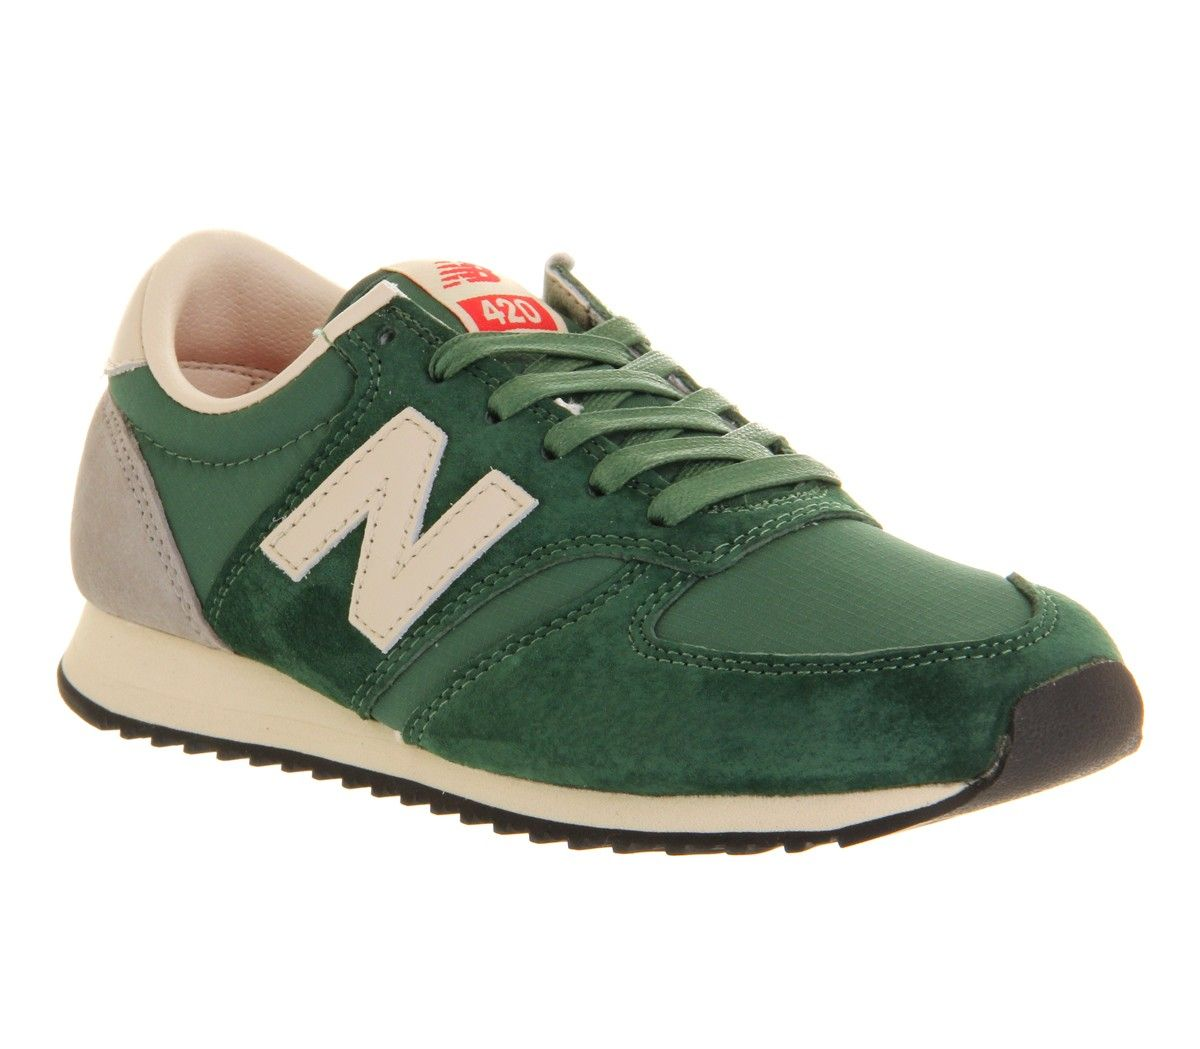 best website cf80b 71dcf New Balance 420 Mujer Hombre Verde Amarillento Gris,Various trainers in  stock with best quality as you see.